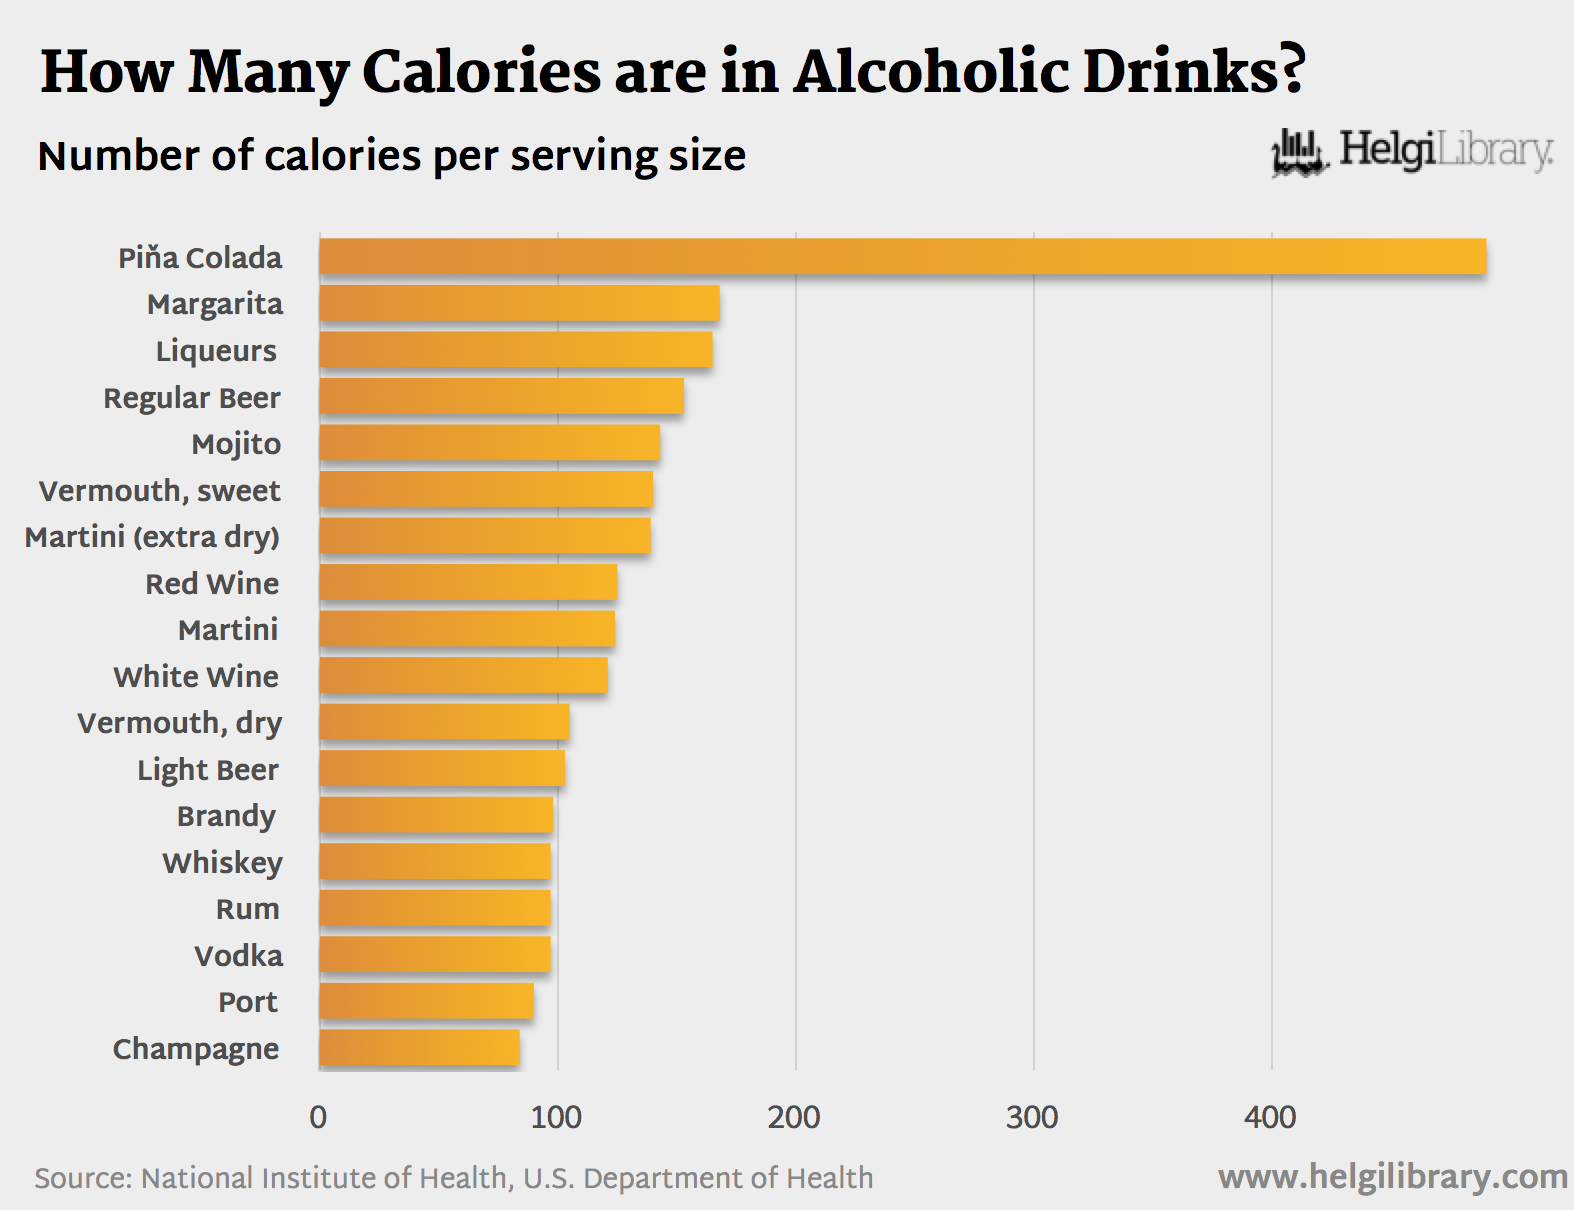 How many calories are in alcoholic drinks helgi library for How many calories in fried fish